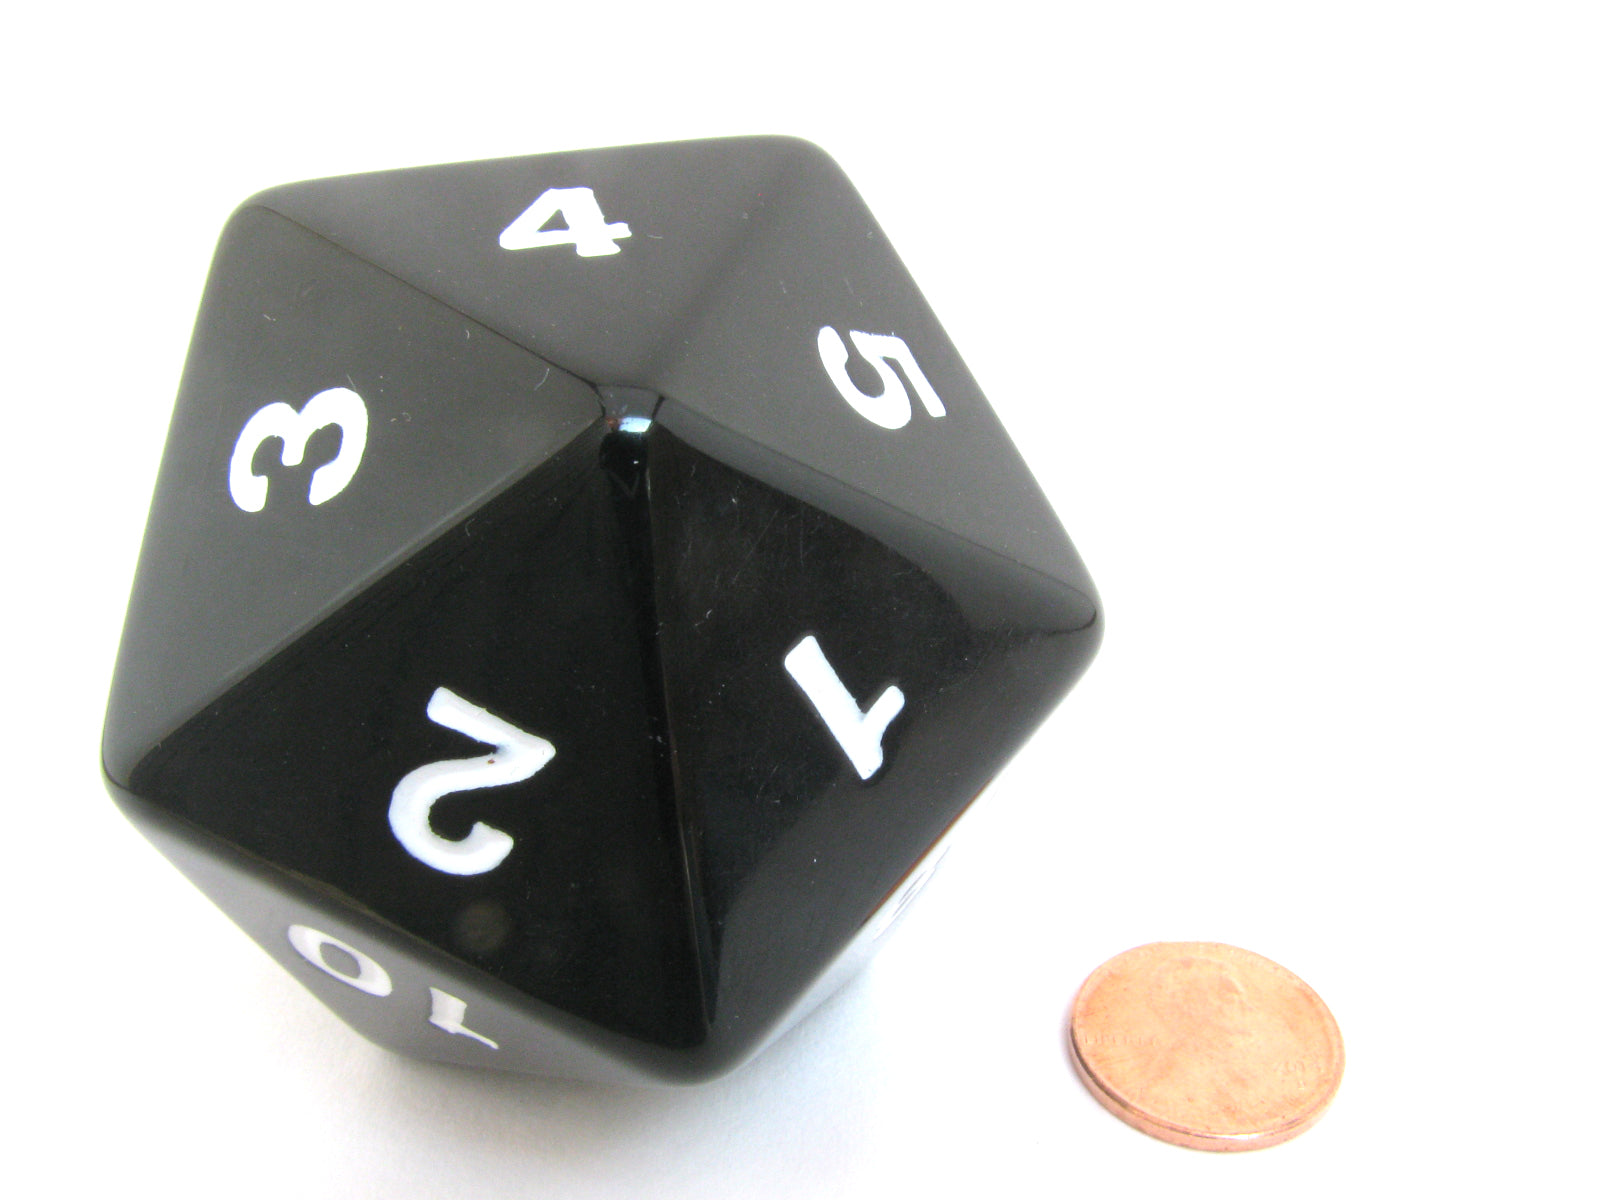 55mm Jumbo 20-Sided D20 Countdown Dice - Opaque Black with White Numbers